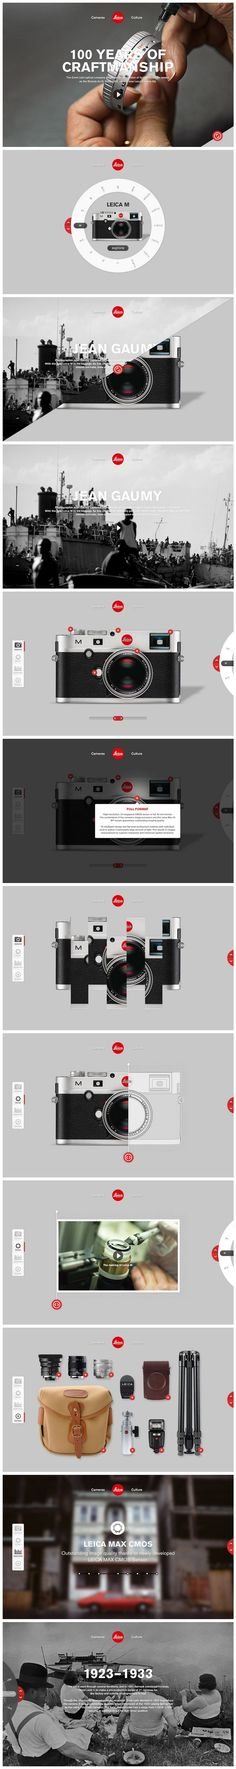 Leica. The 10th module has very interesting and clean way of displaying a group of products. Maybe this could be used for inspiration. #website